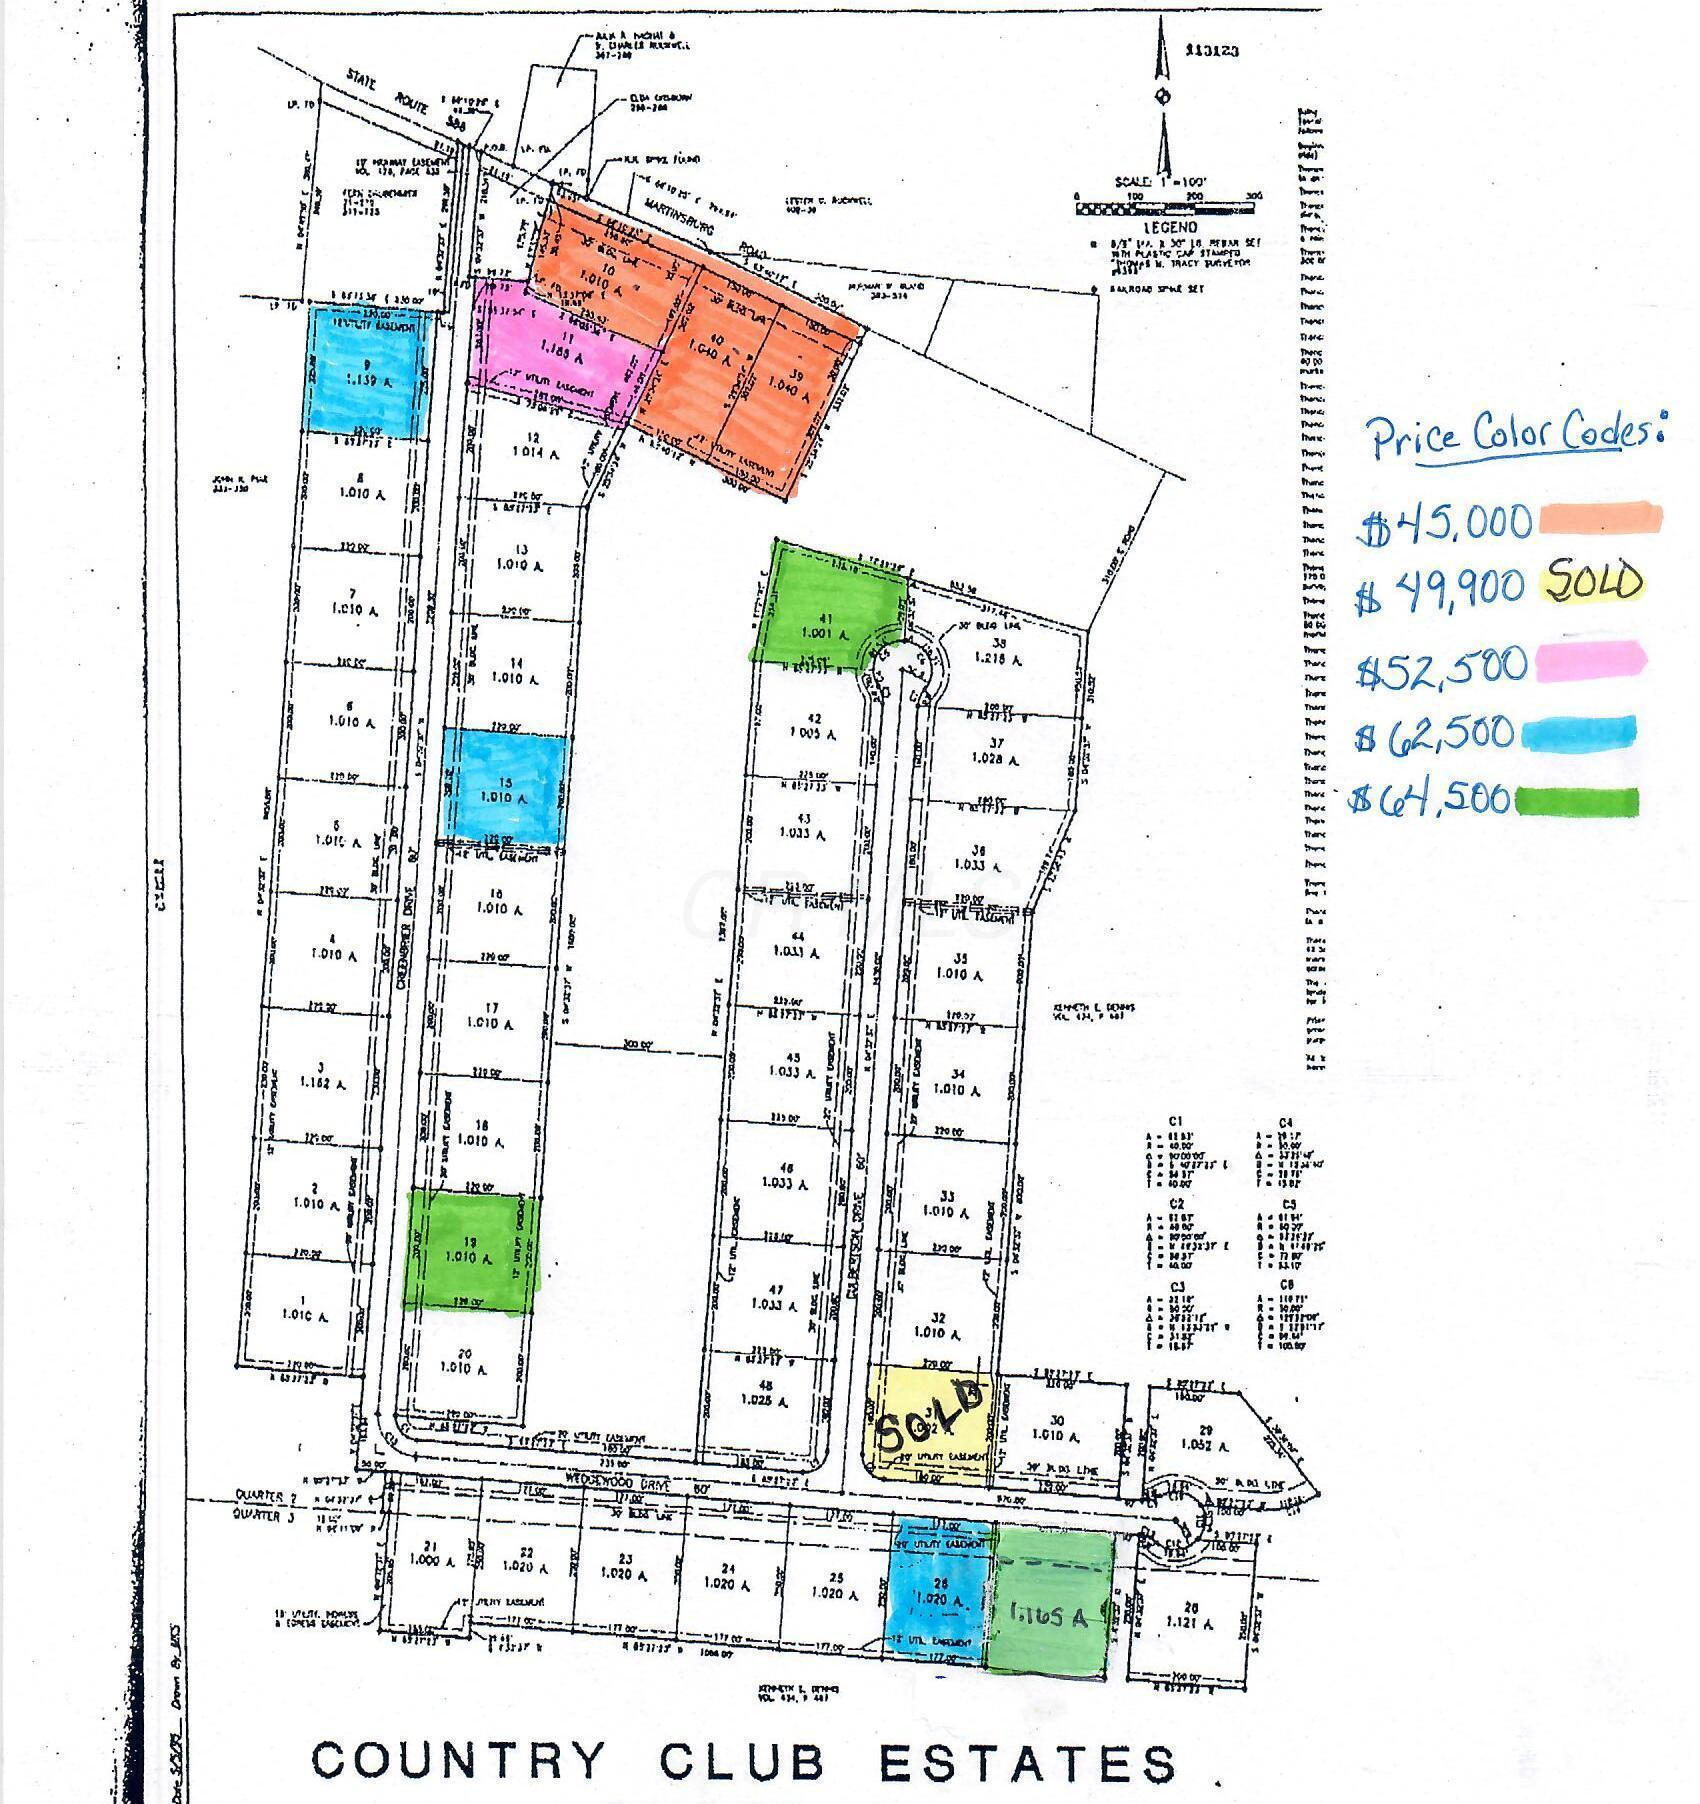 Country Club Estates Lots